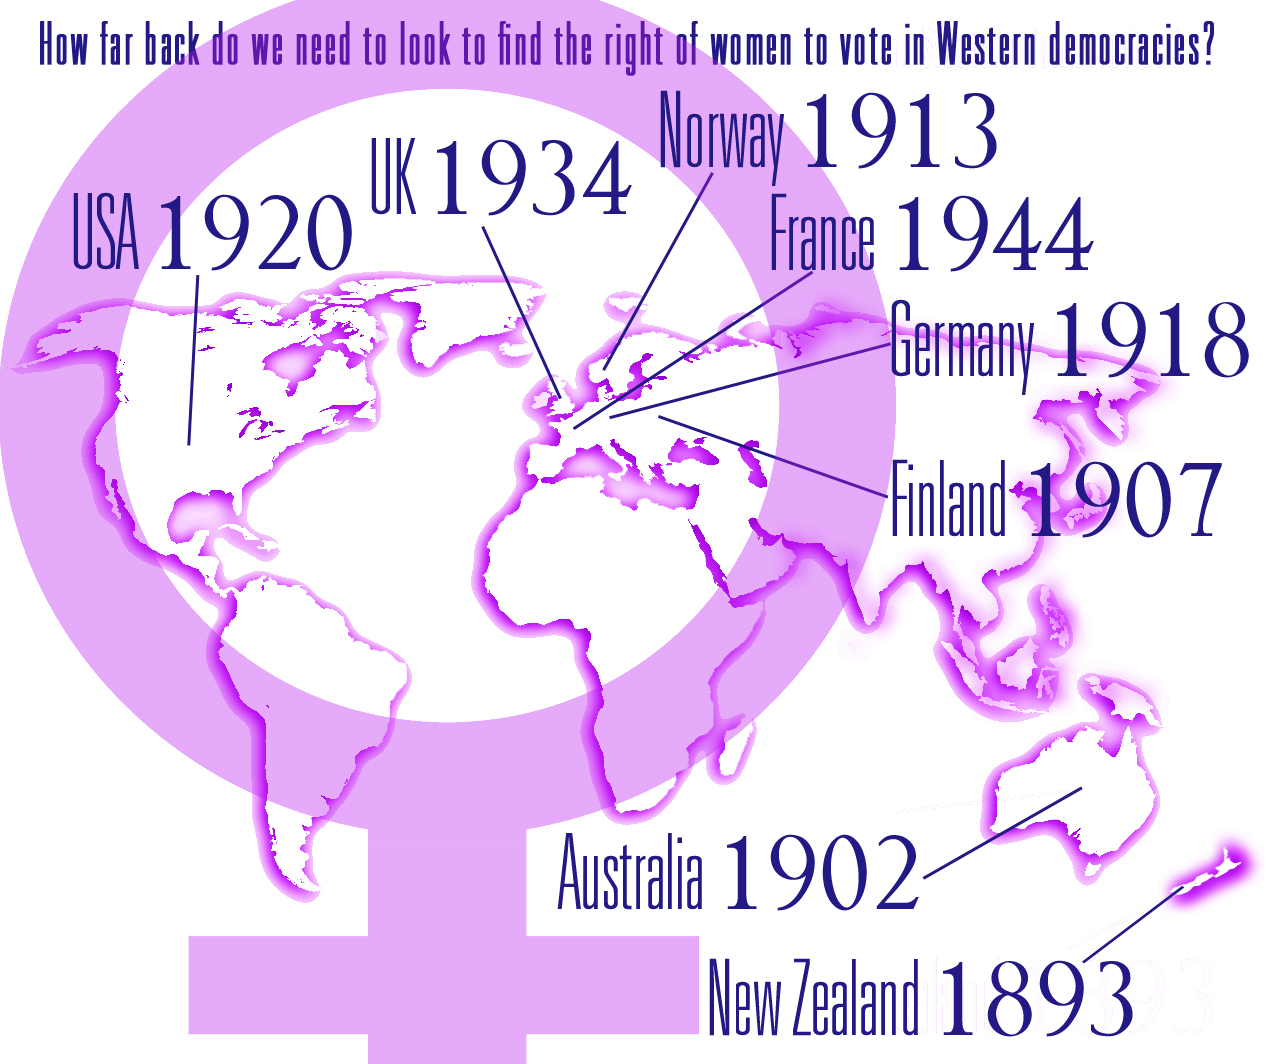 Voting Rights of Women - Dates